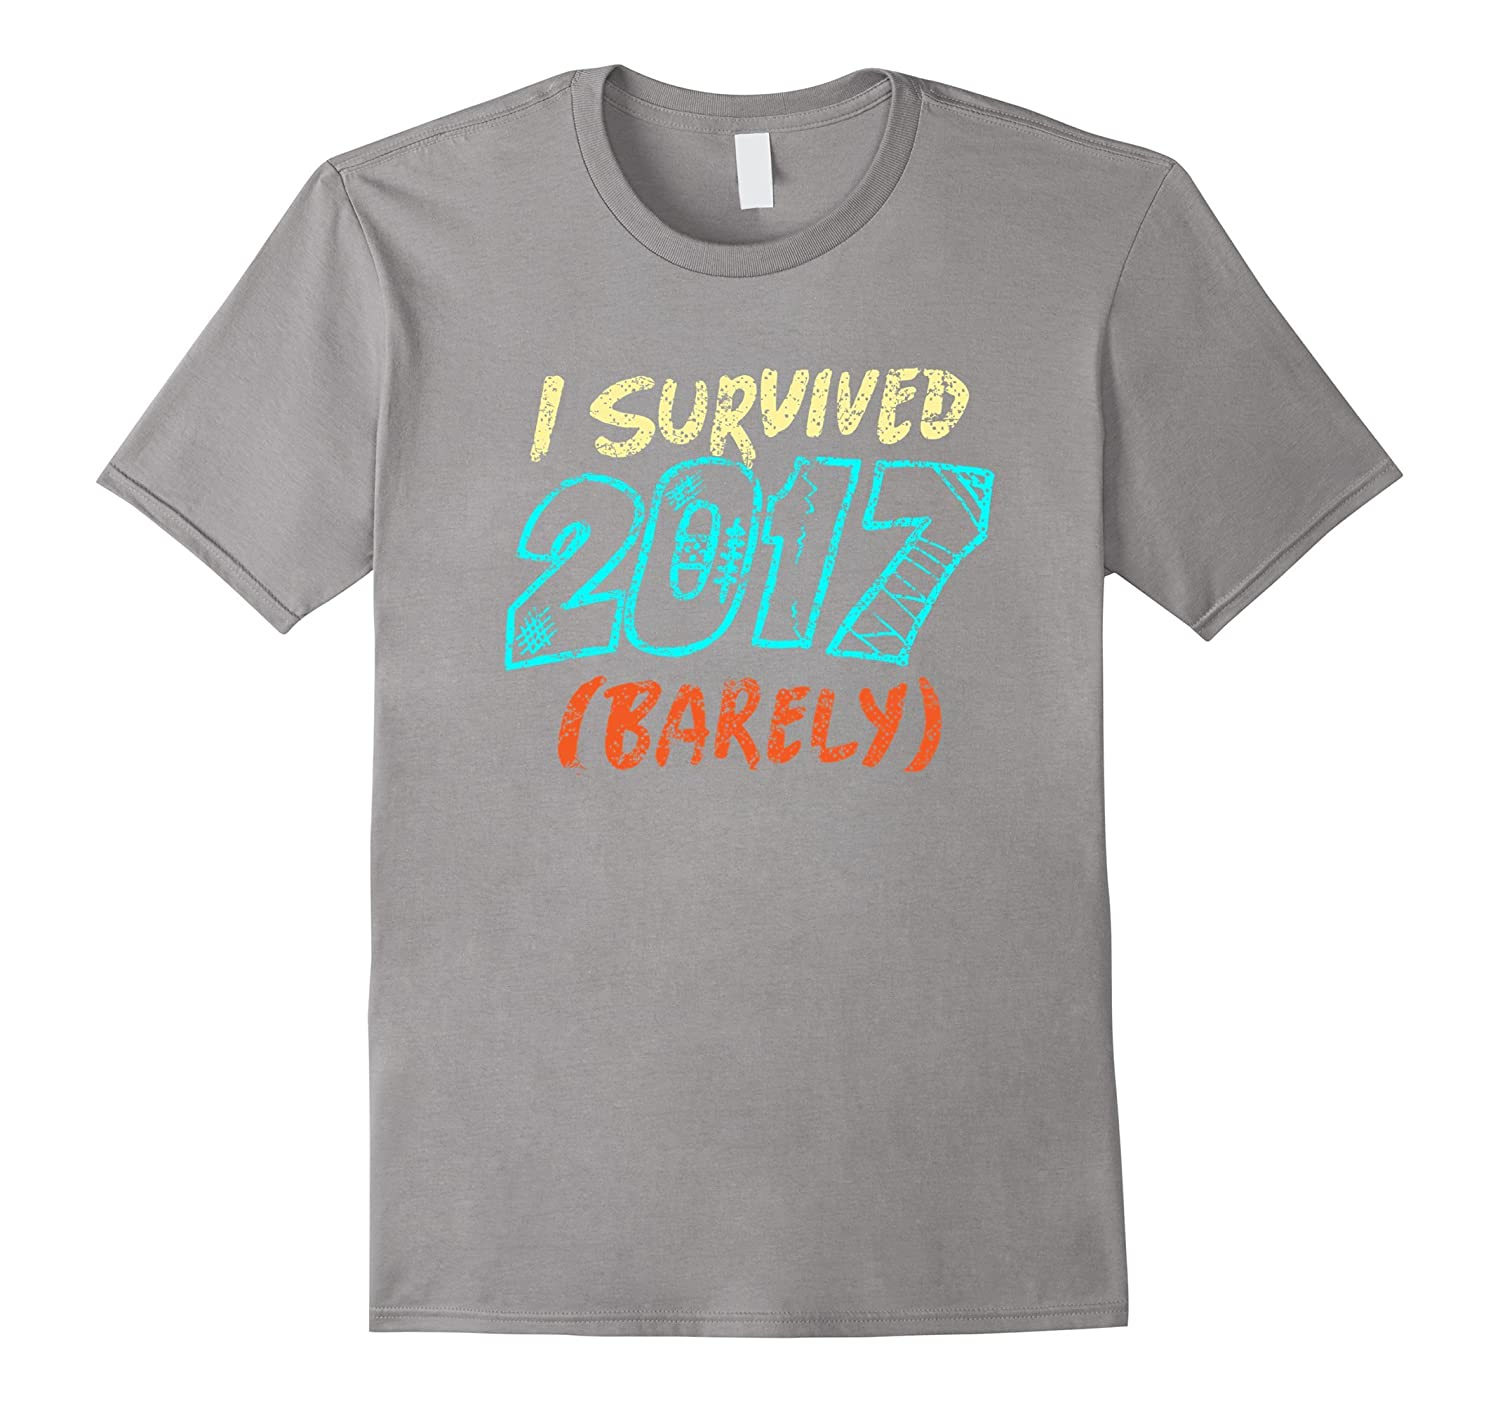 Funny New Years Eve Shirt 2018 - I Survived 2017 (barely)-ANZ